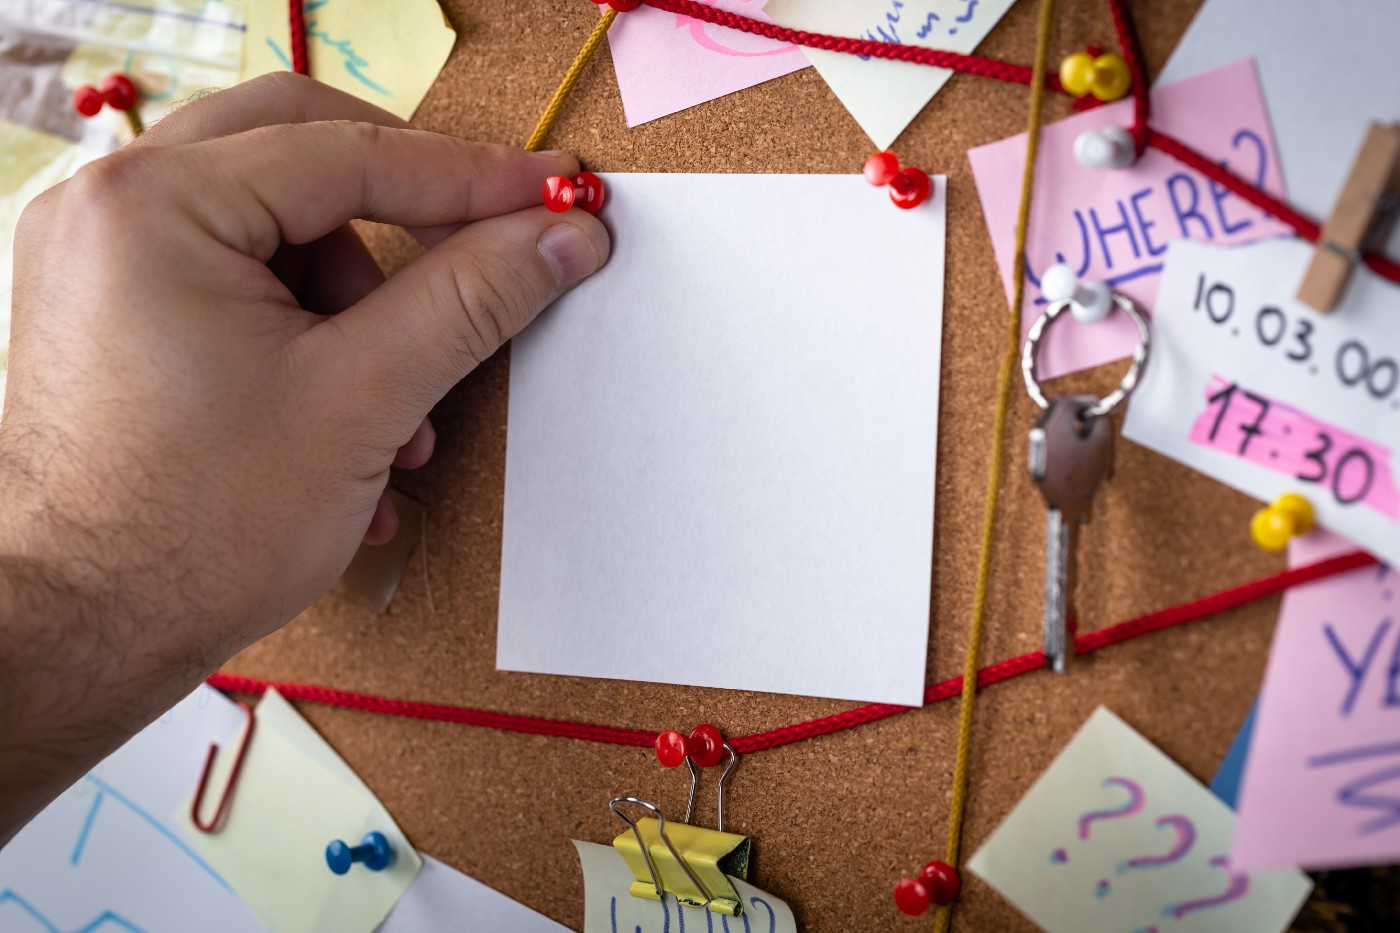 corkboard, evidence board with red yarn showing associations between evidence